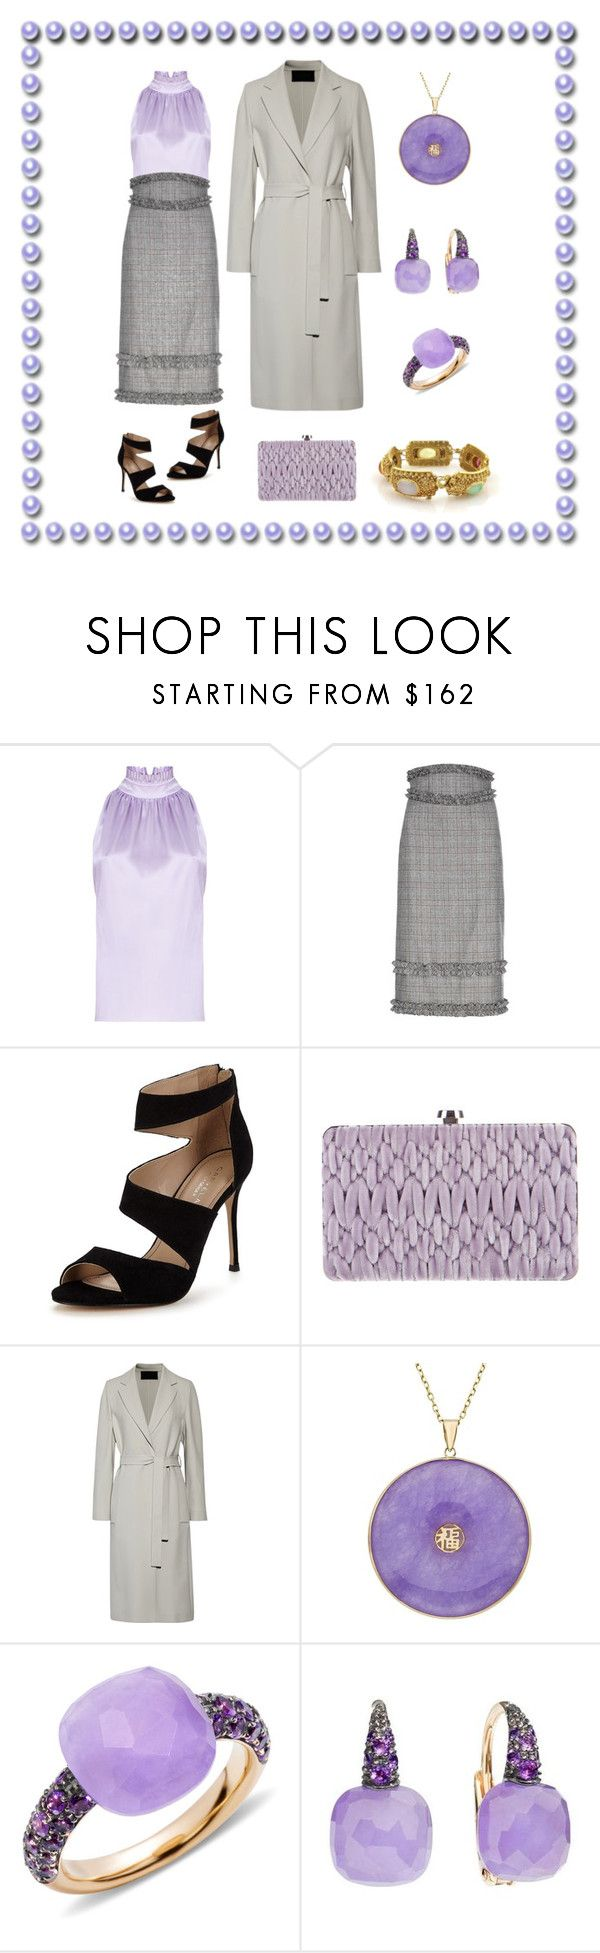 """""""Easter Outfit II"""" by karen-galves on Polyvore featuring Carvela, Miu Miu, Calvin Klein Collection and Pomellato"""